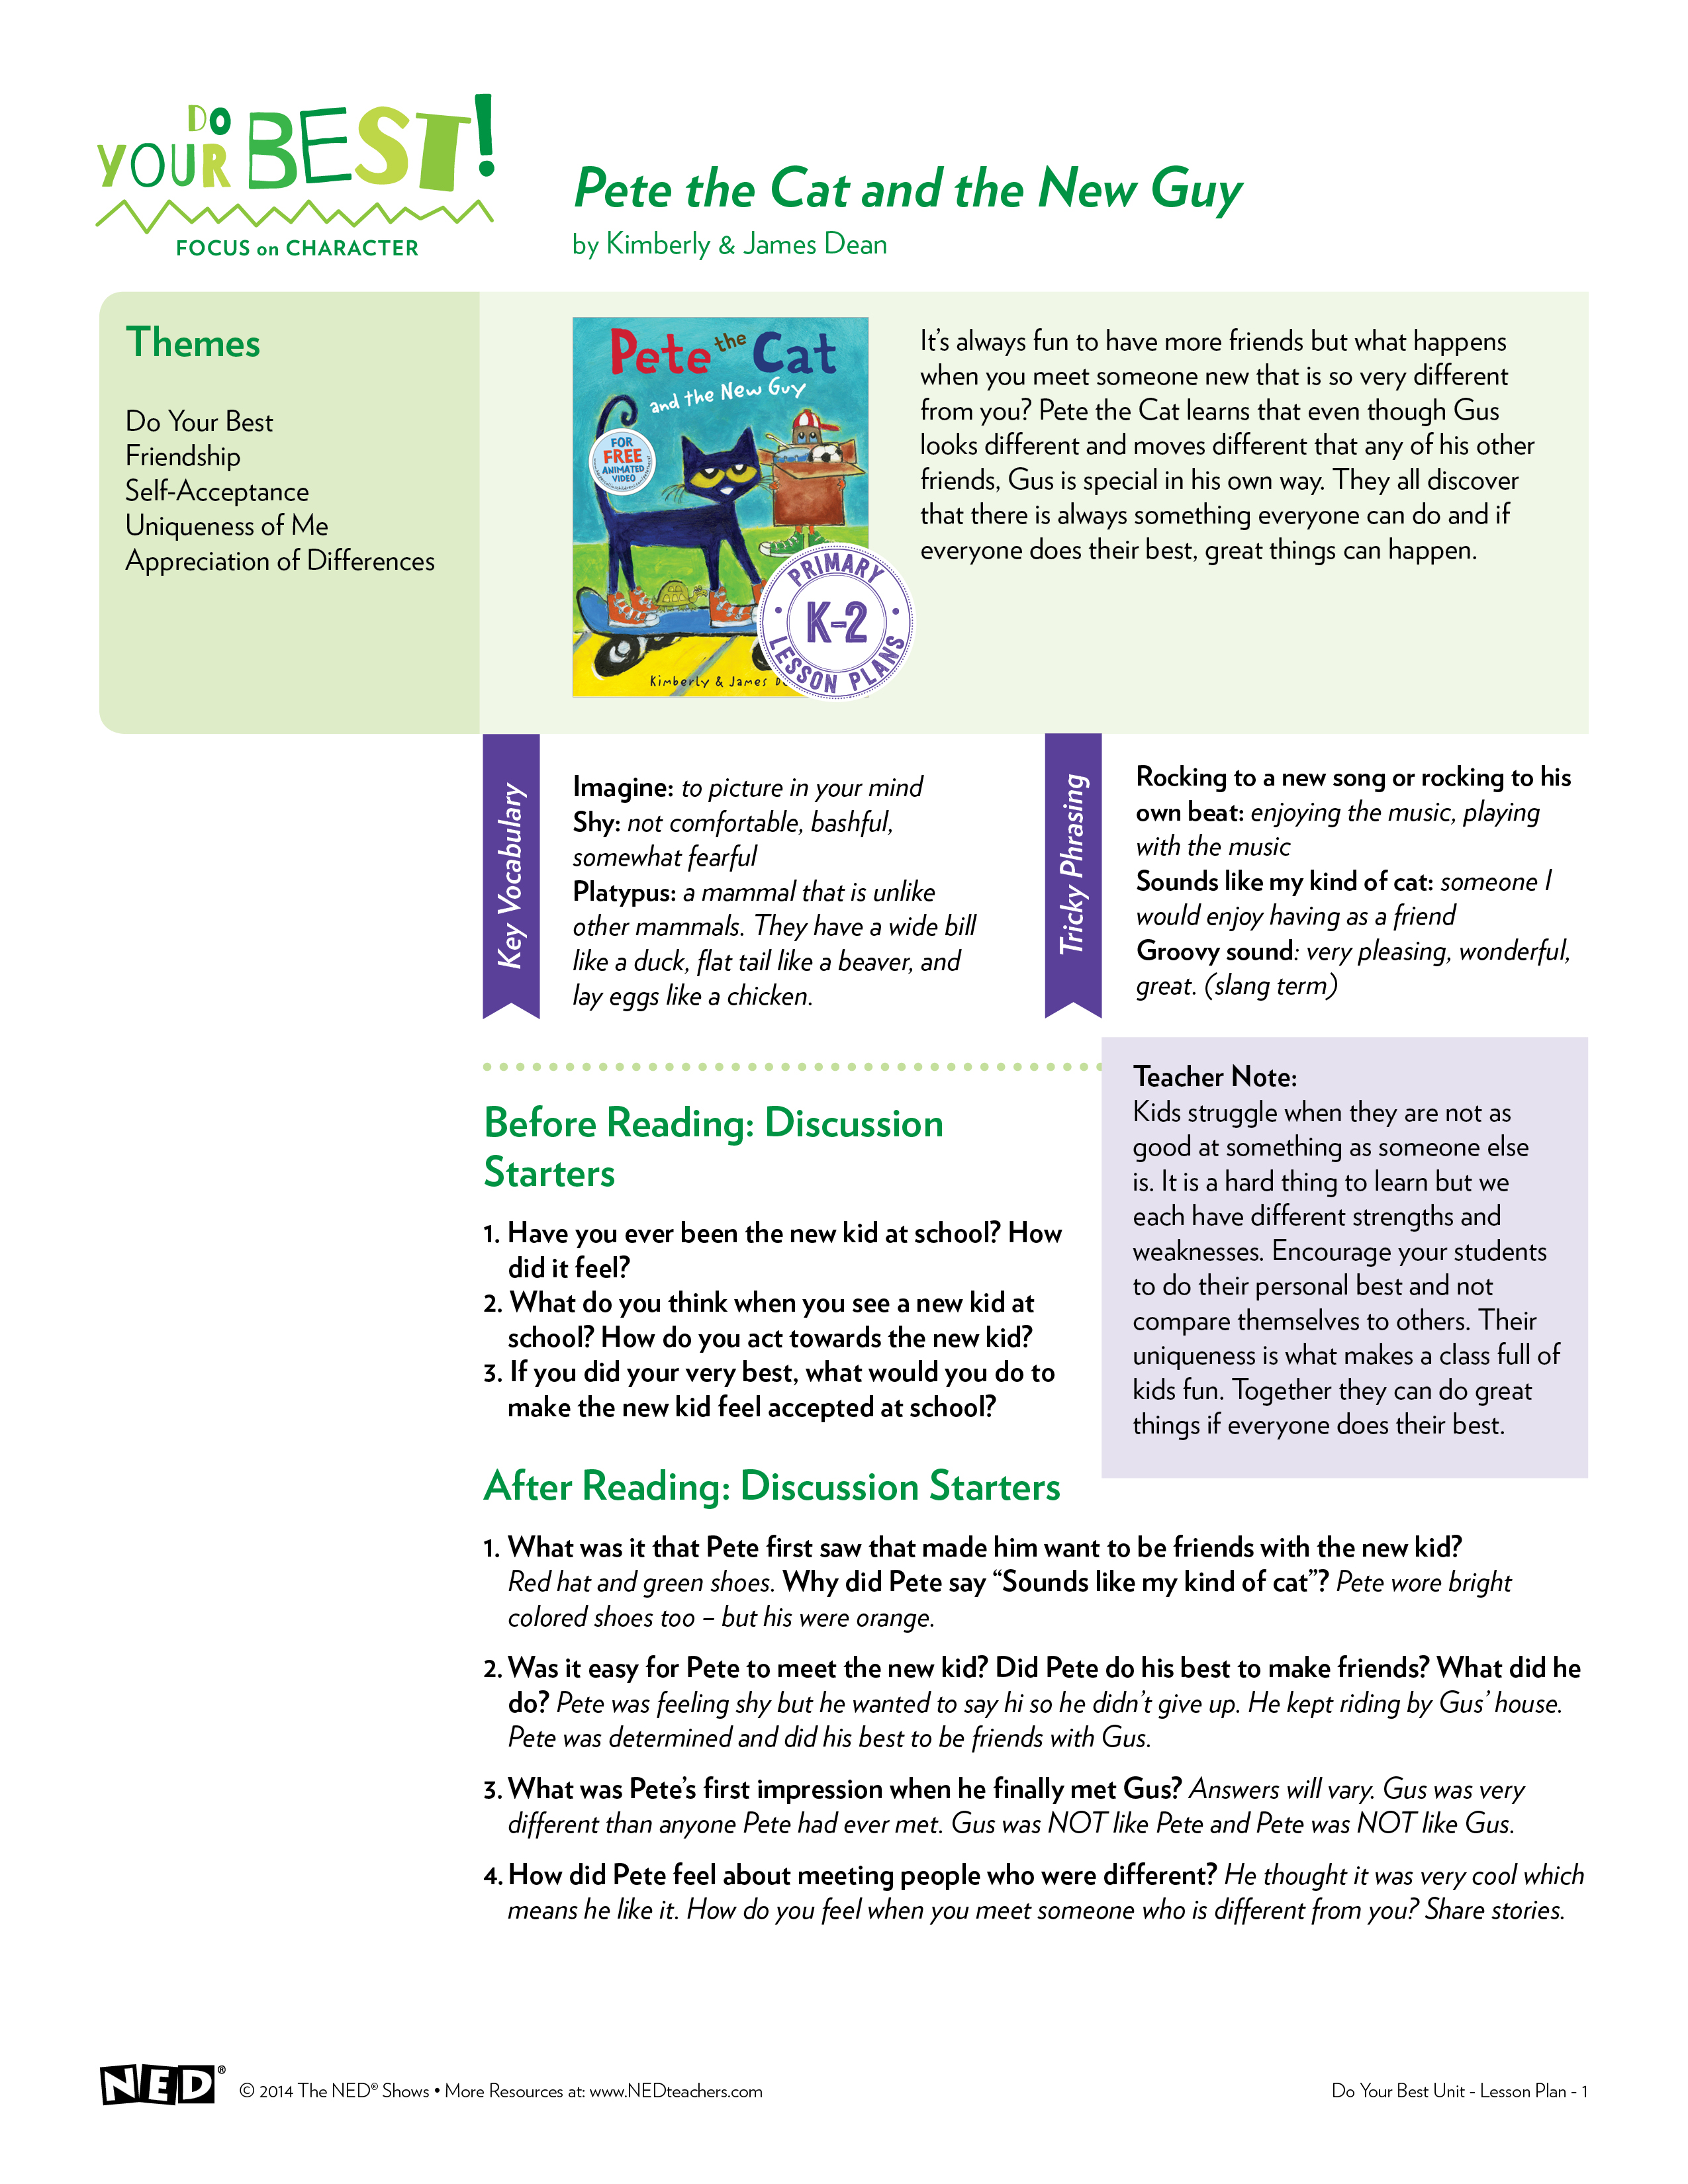 Pete the Cat and the New Guy Lesson